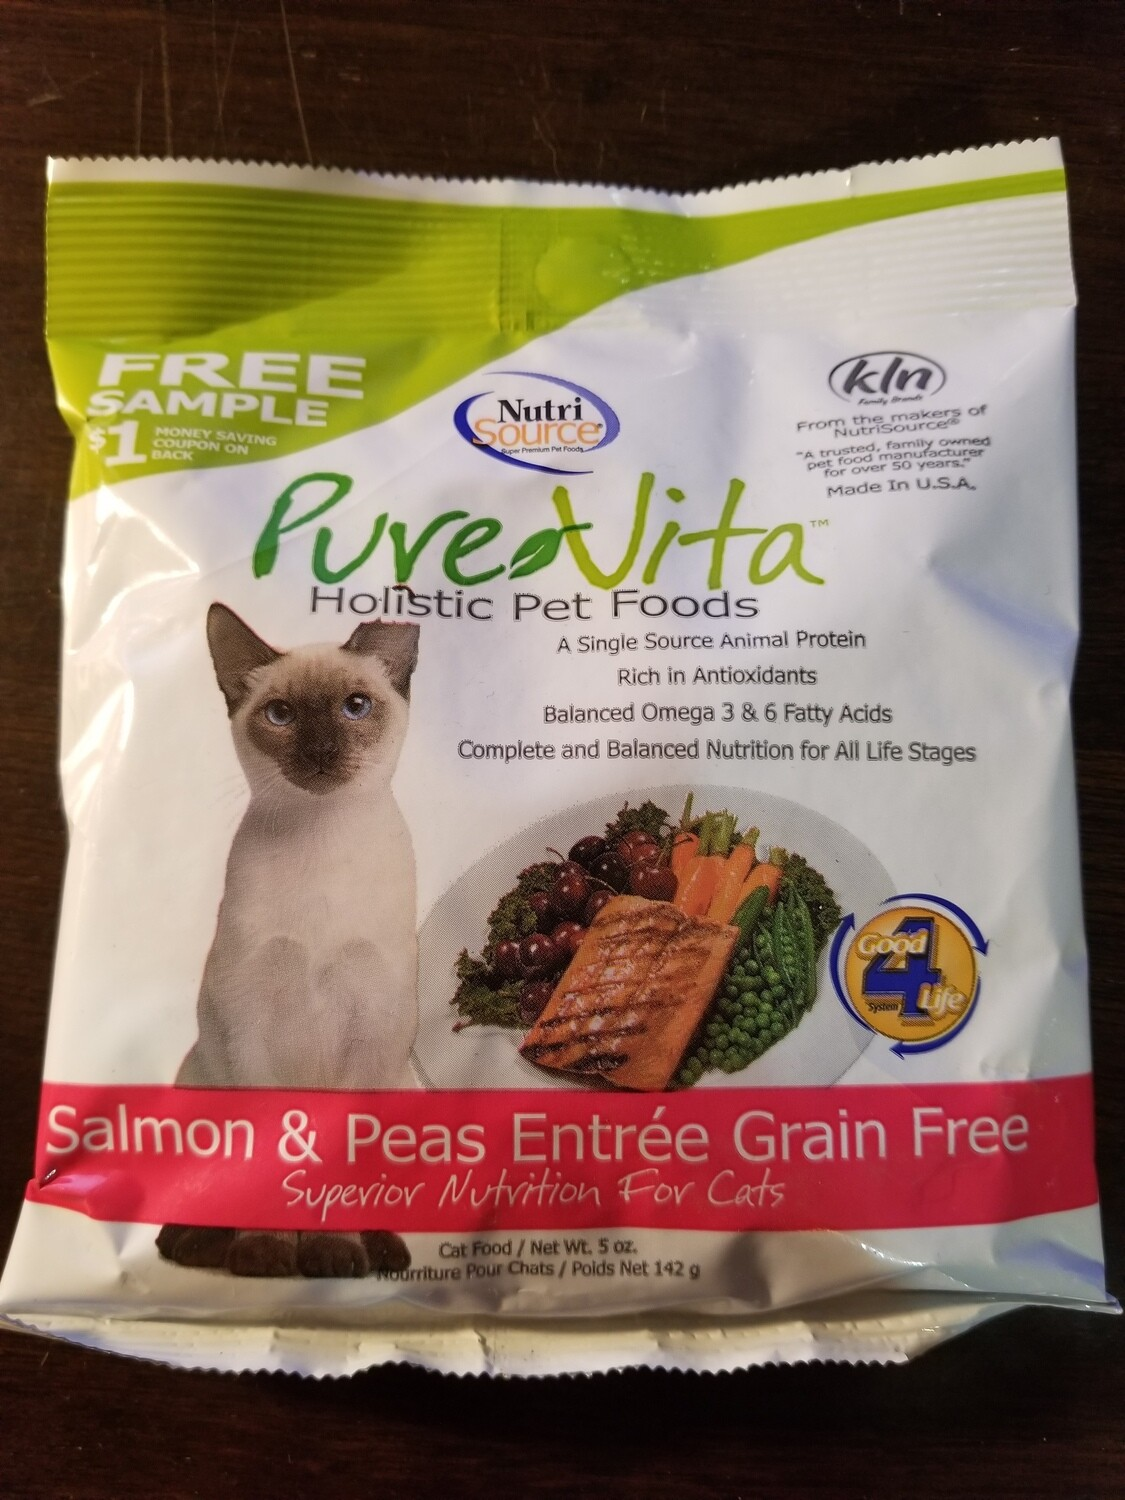 Trial size. NutrI-source Pure Vita holistic pet foods salmon and peas entrée grain-free superior nutrition for cats 5 ounces (5/19)